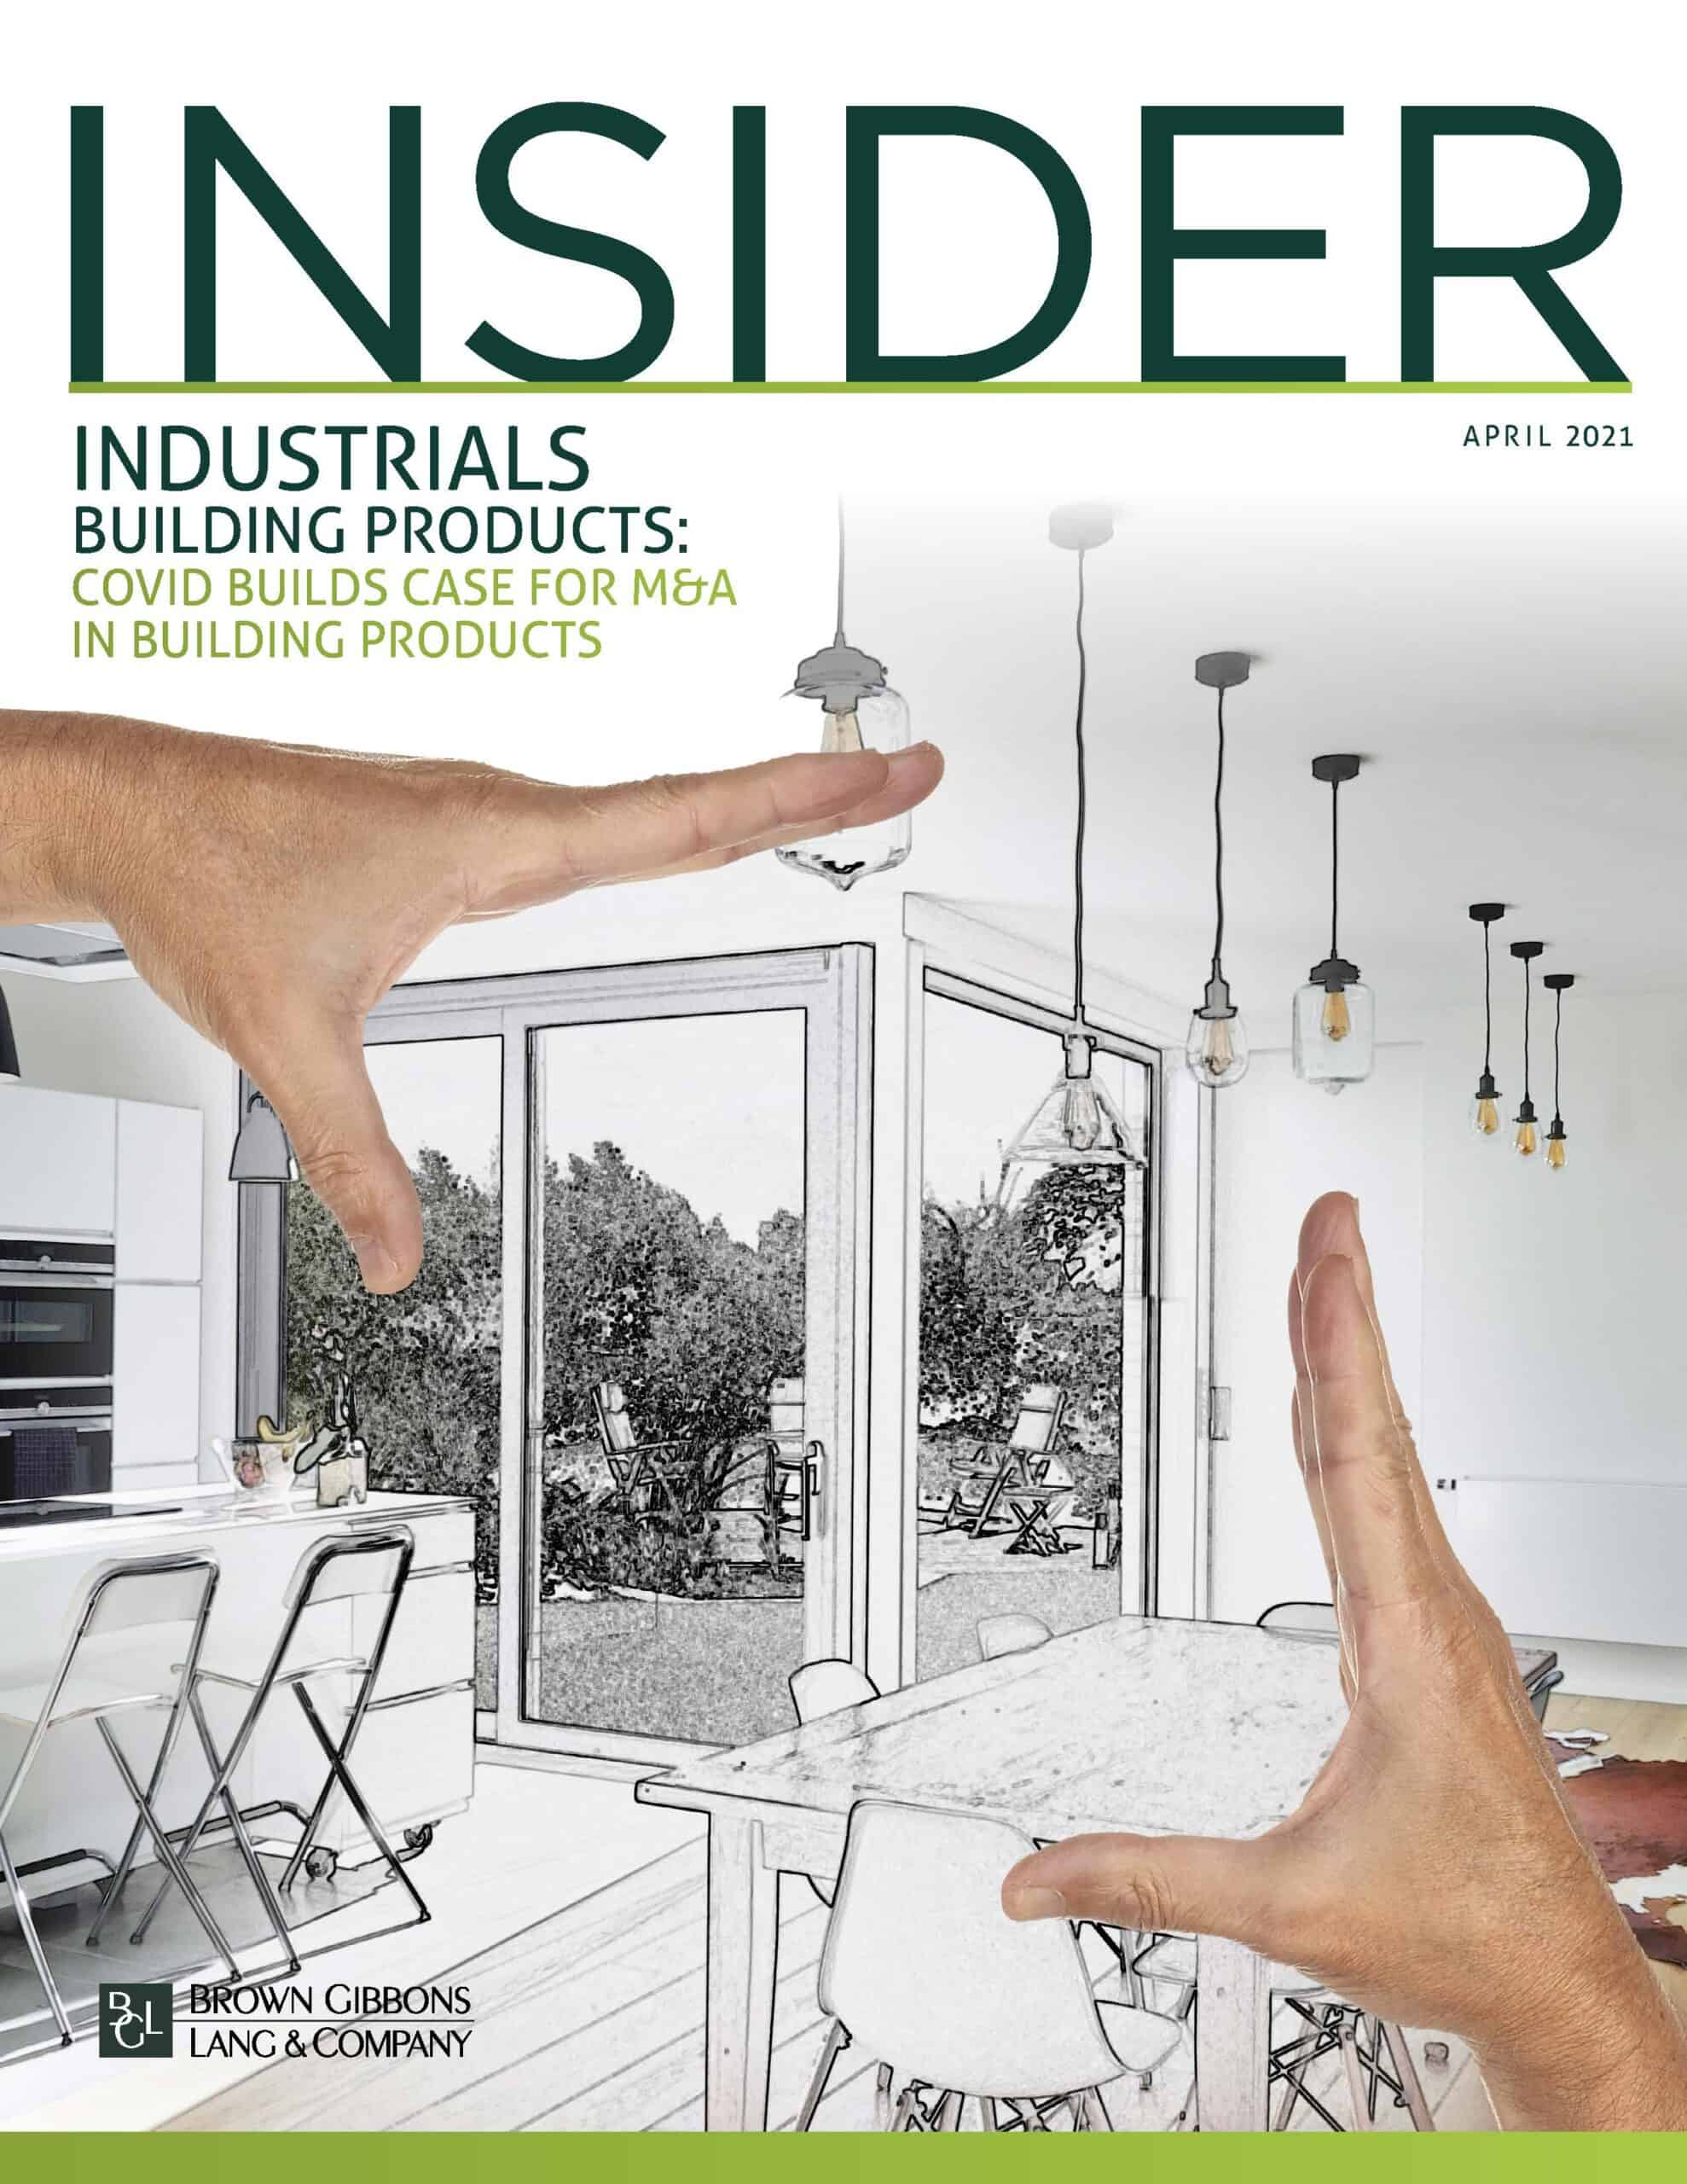 Image for The BGL Industrials Insider – COVID Builds Case for M&A in Building Products Research